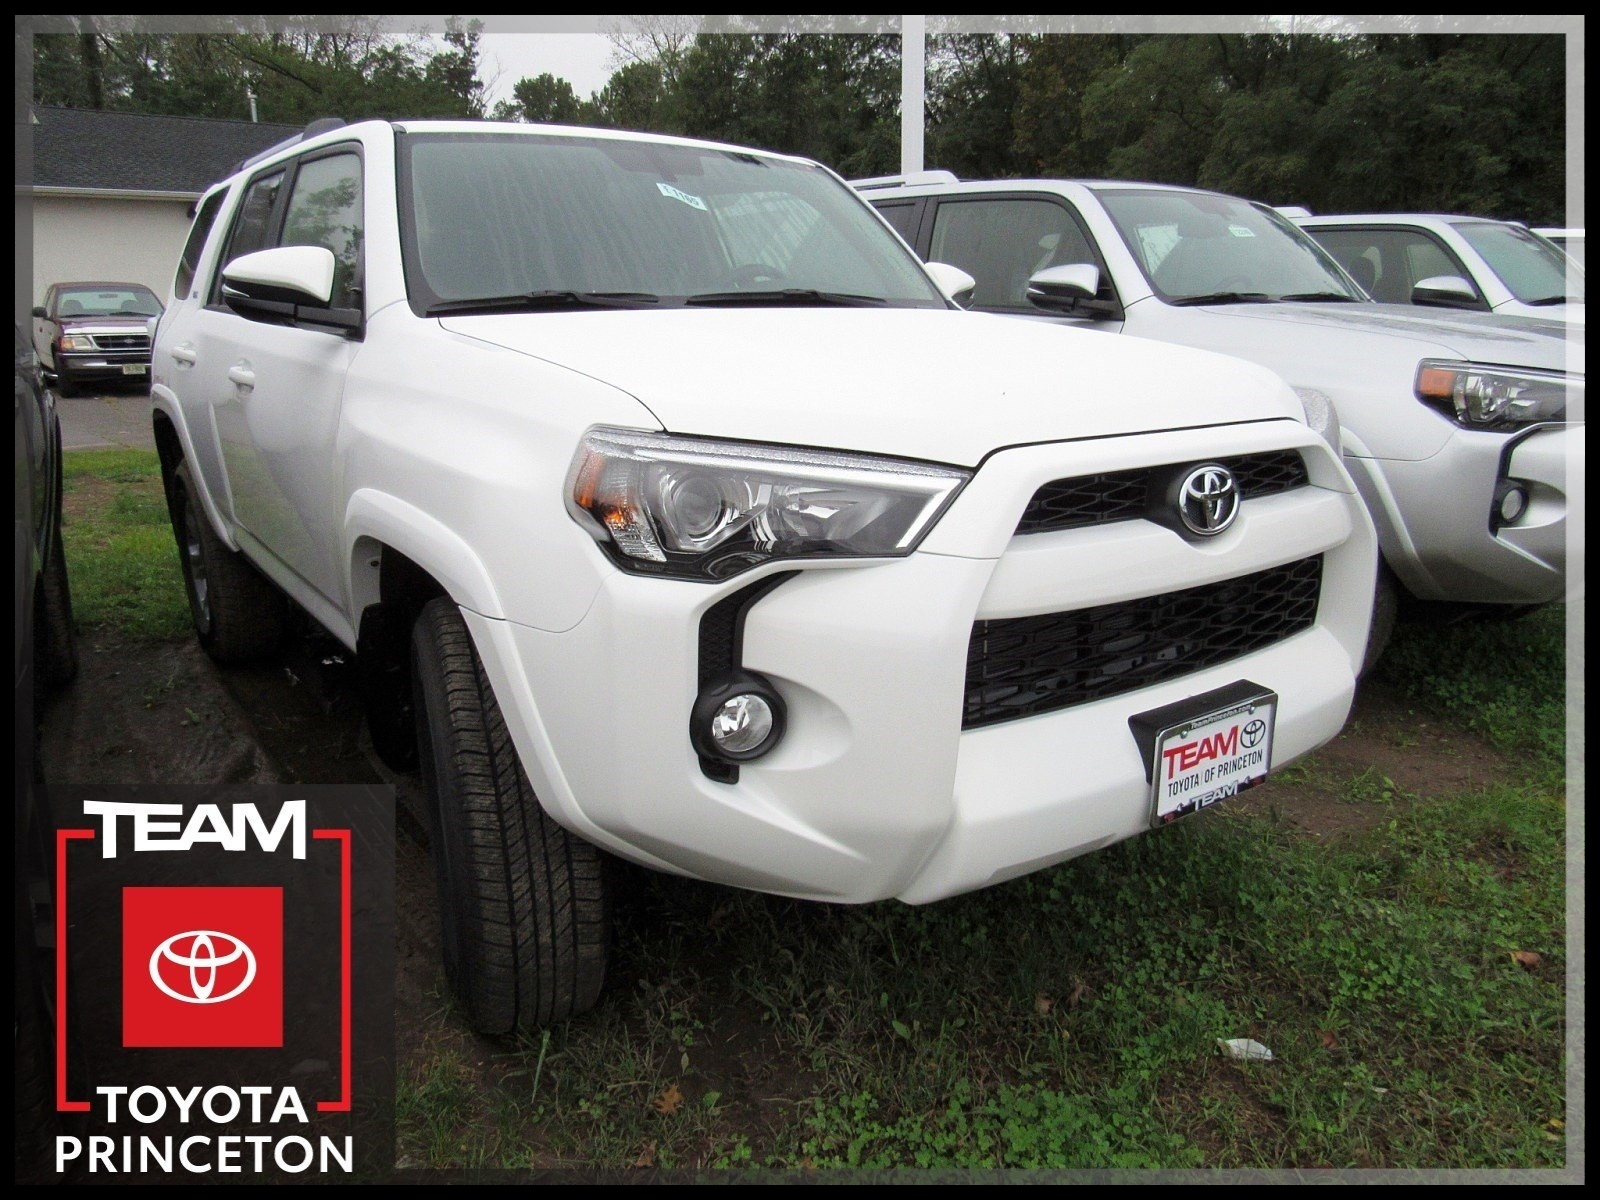 New 2019 Toyota 4Runner SR5 Premium in Lawrenceville NJ Team Toyota of Princeton